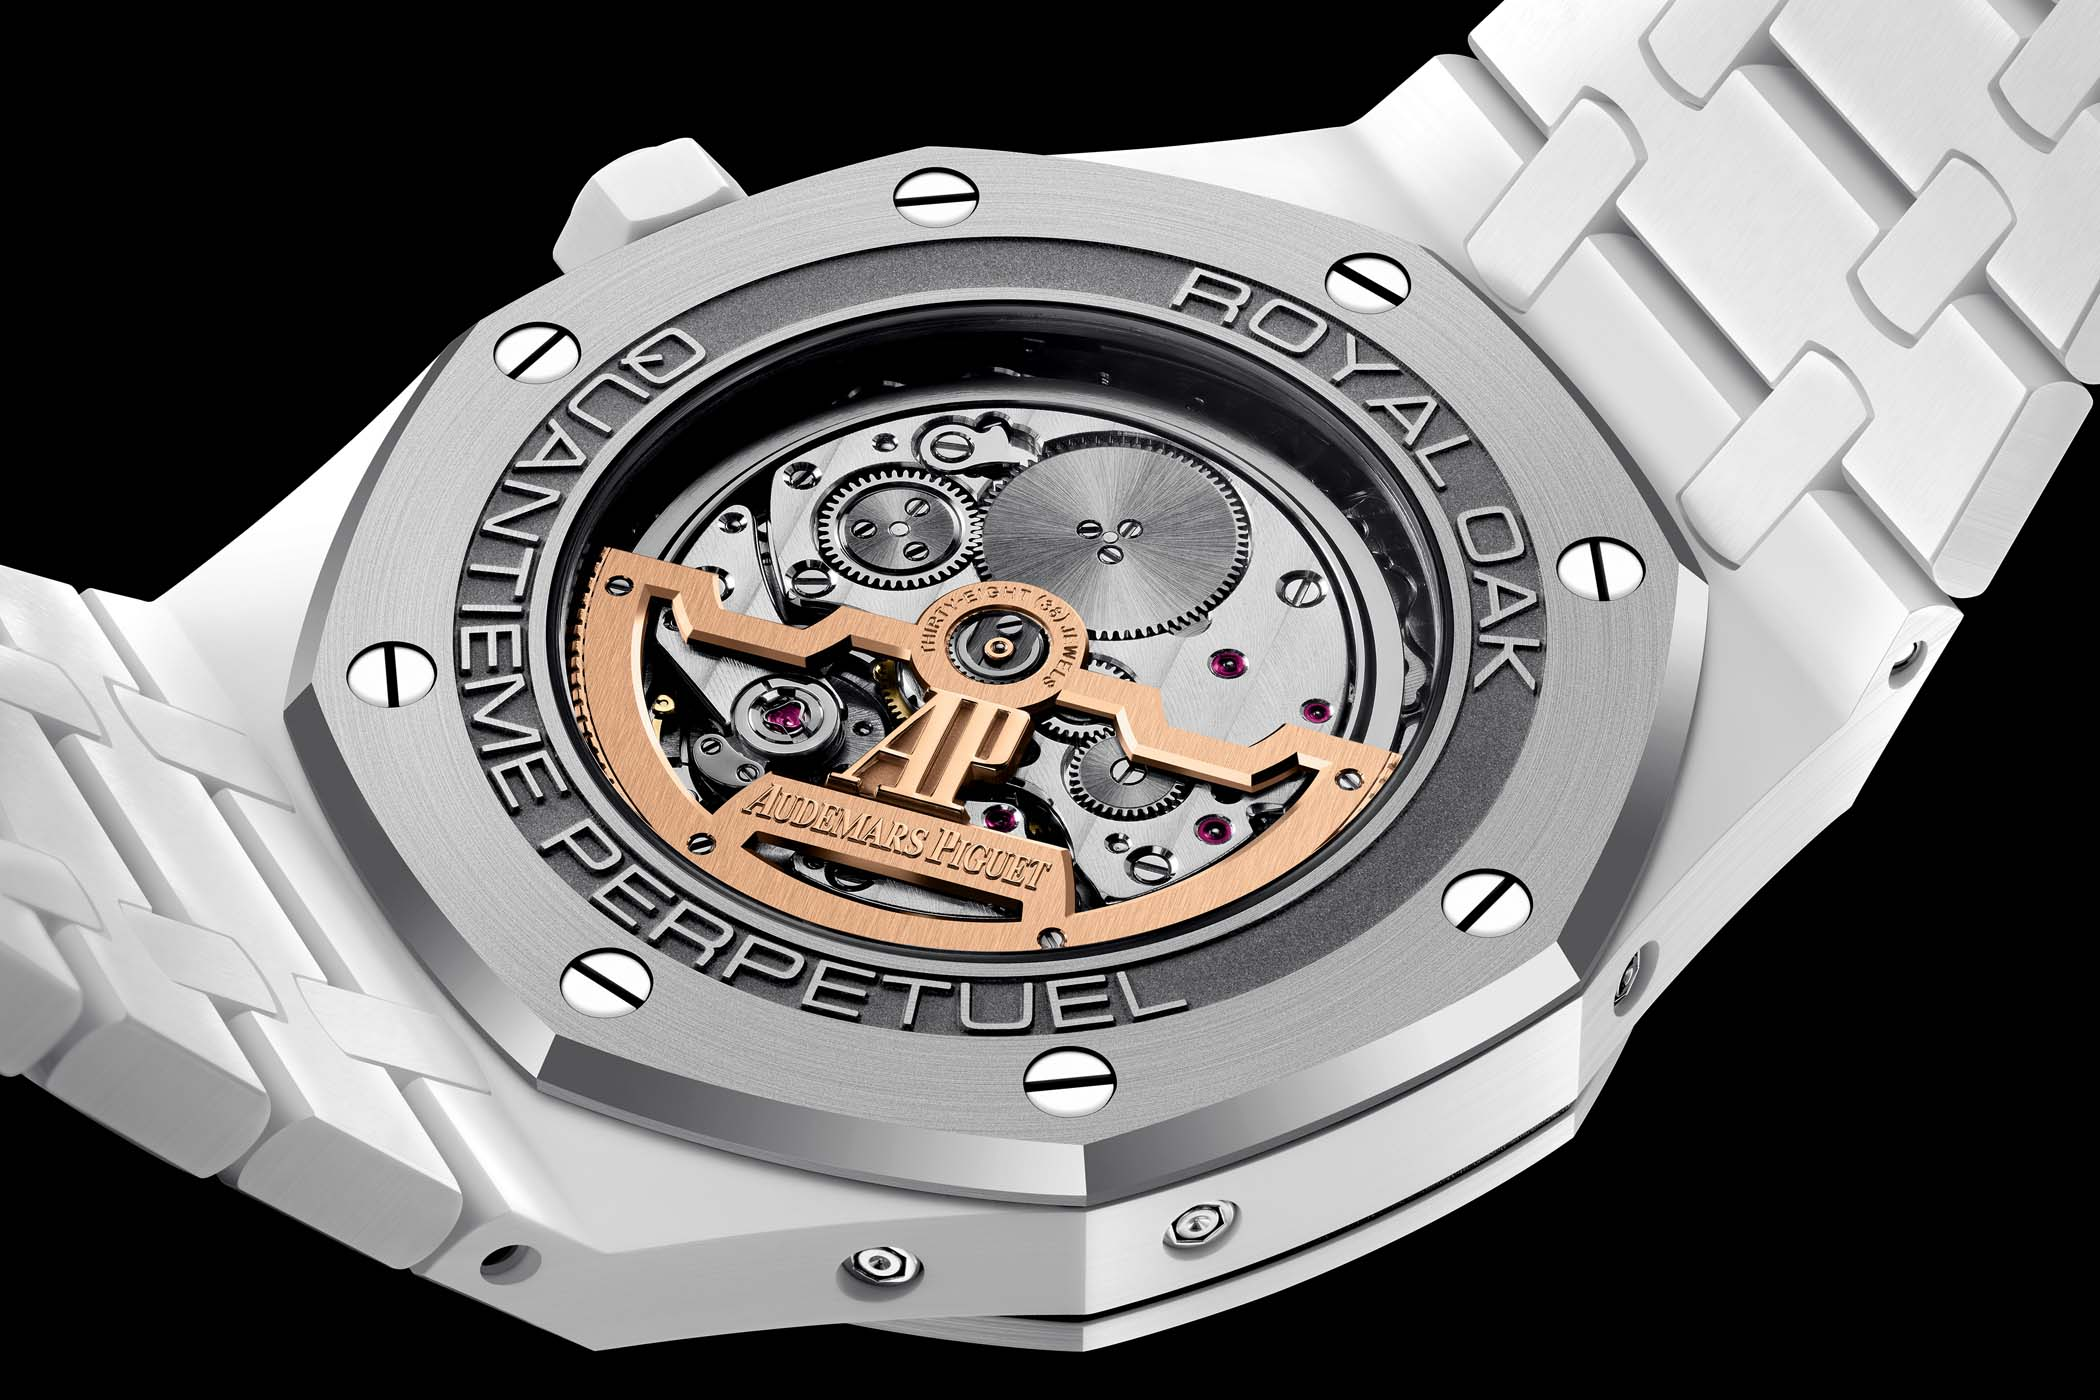 Audemars Piguet Royal Oak Perpetual Calendar White Ceramic 26579CB.OO.1225CB.01 calibre 5134 ultra-thin